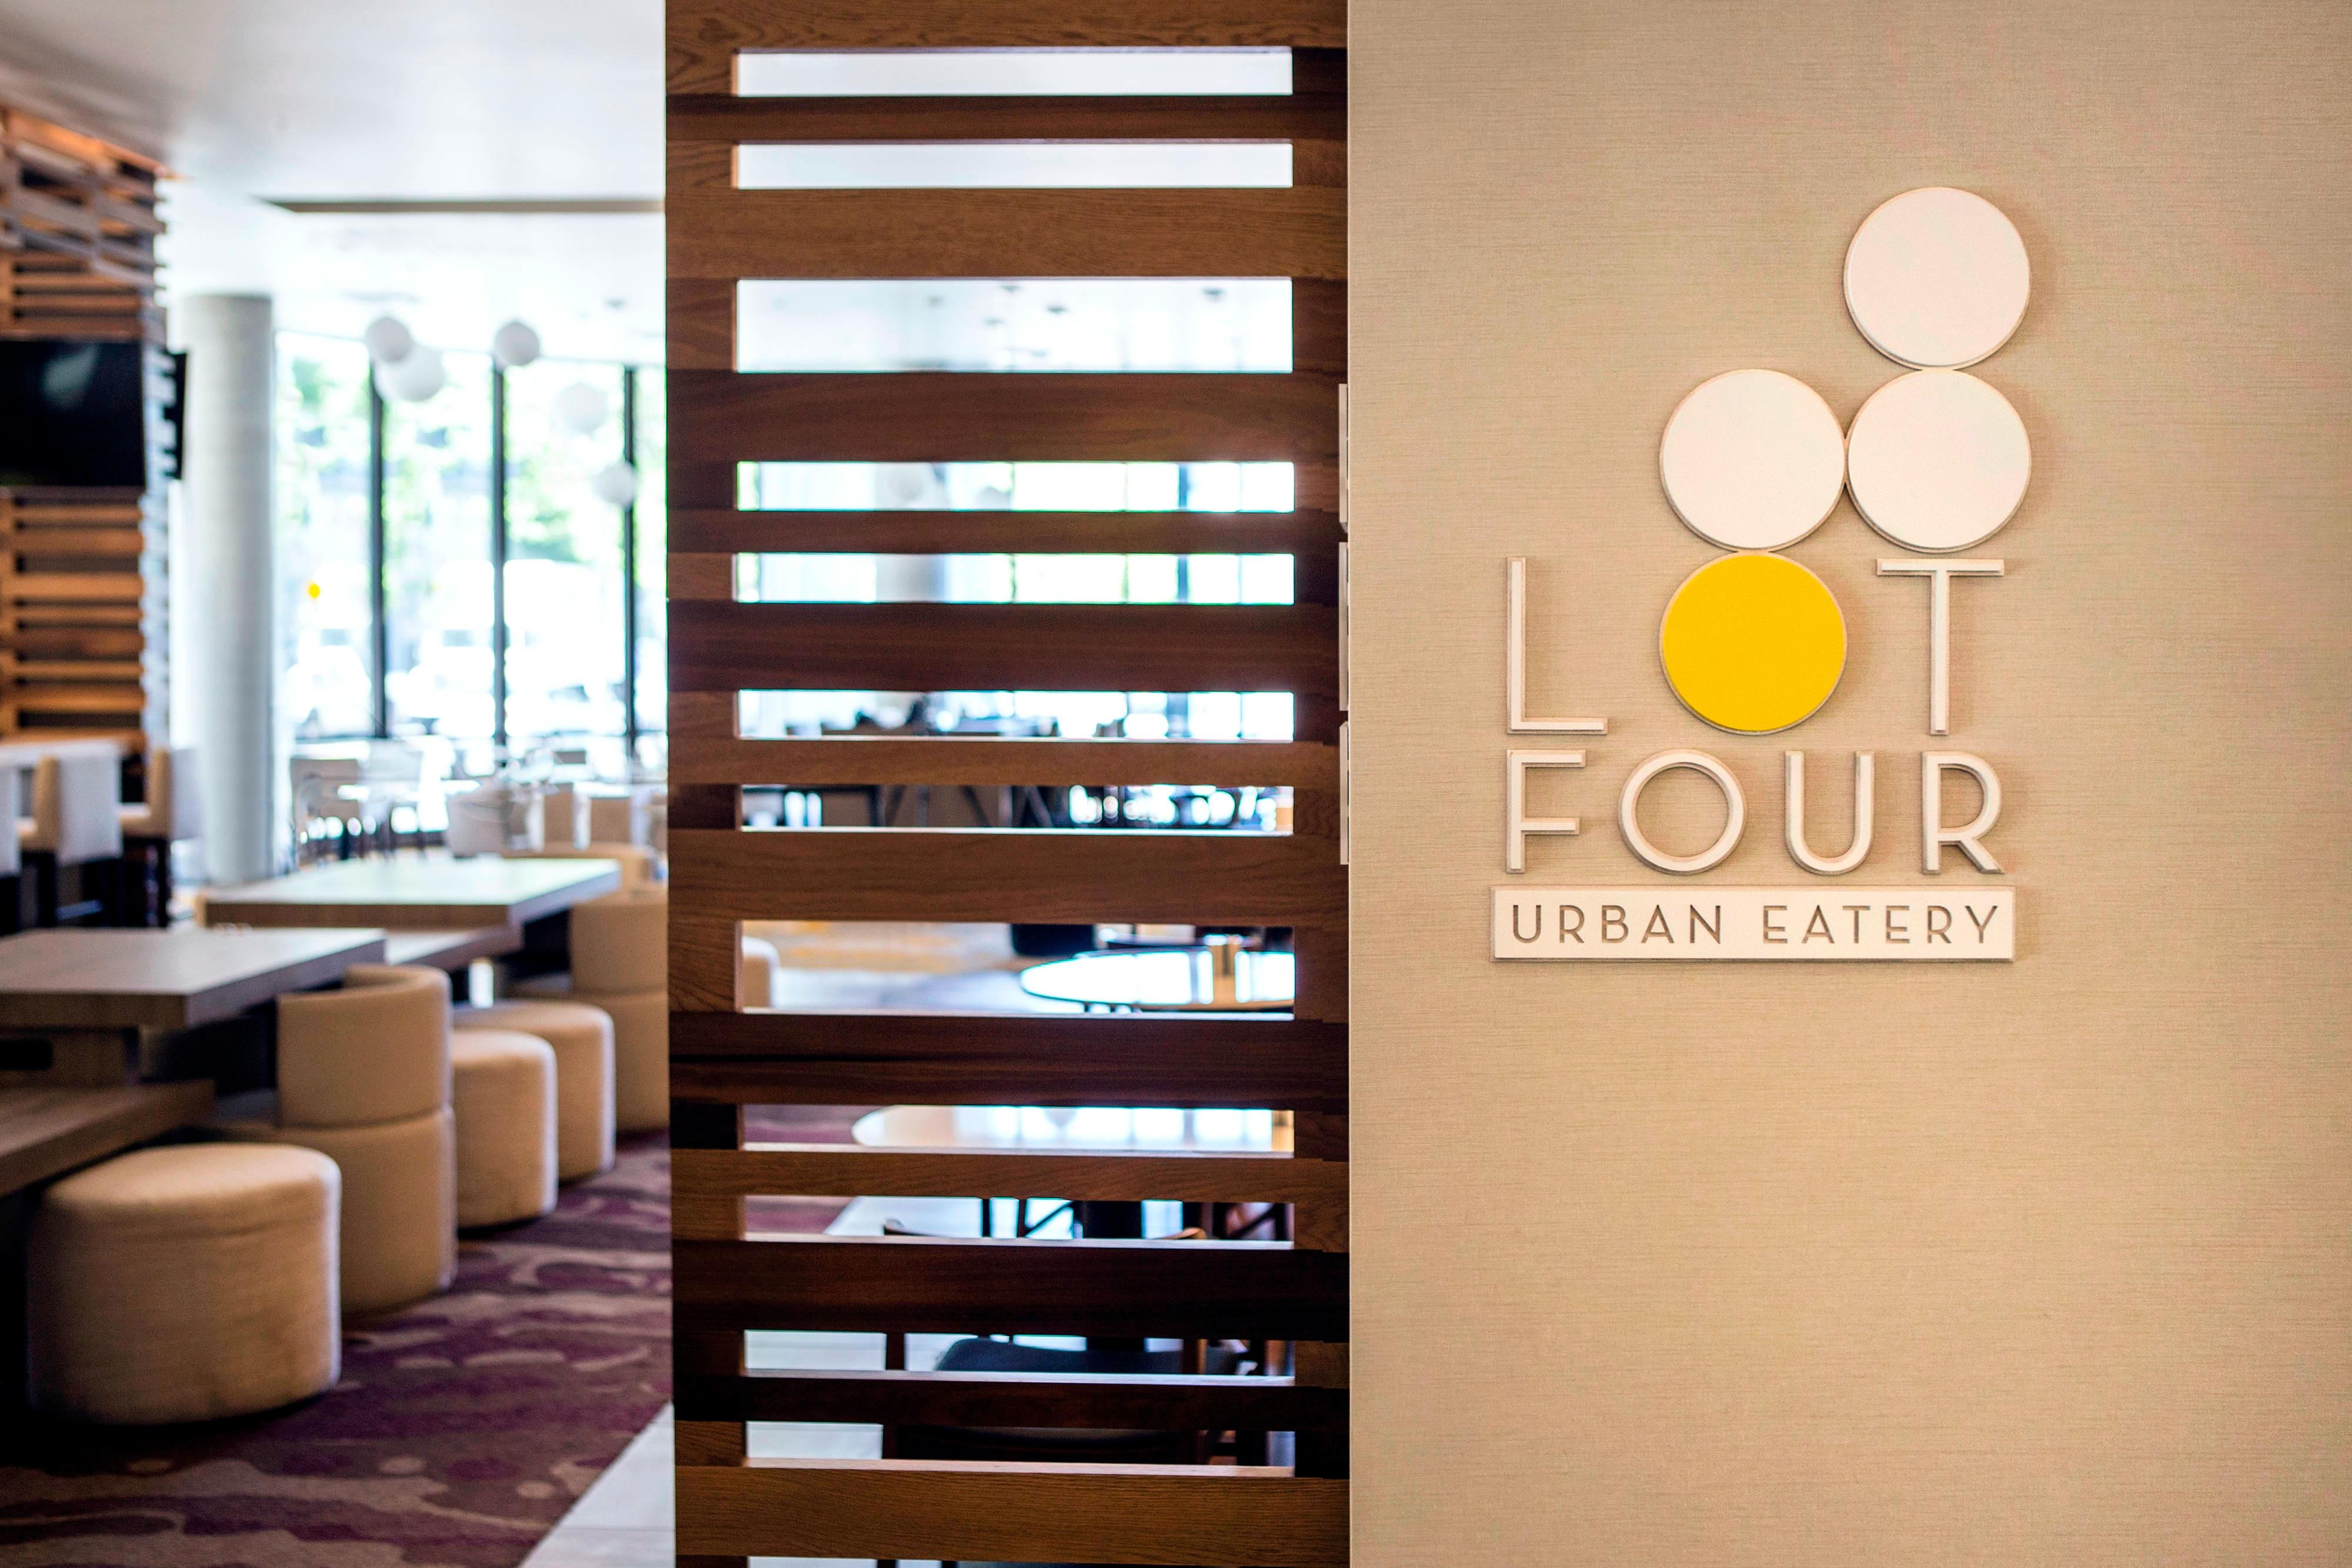 Lot 4 Urban Eatery Restaurant Entrance